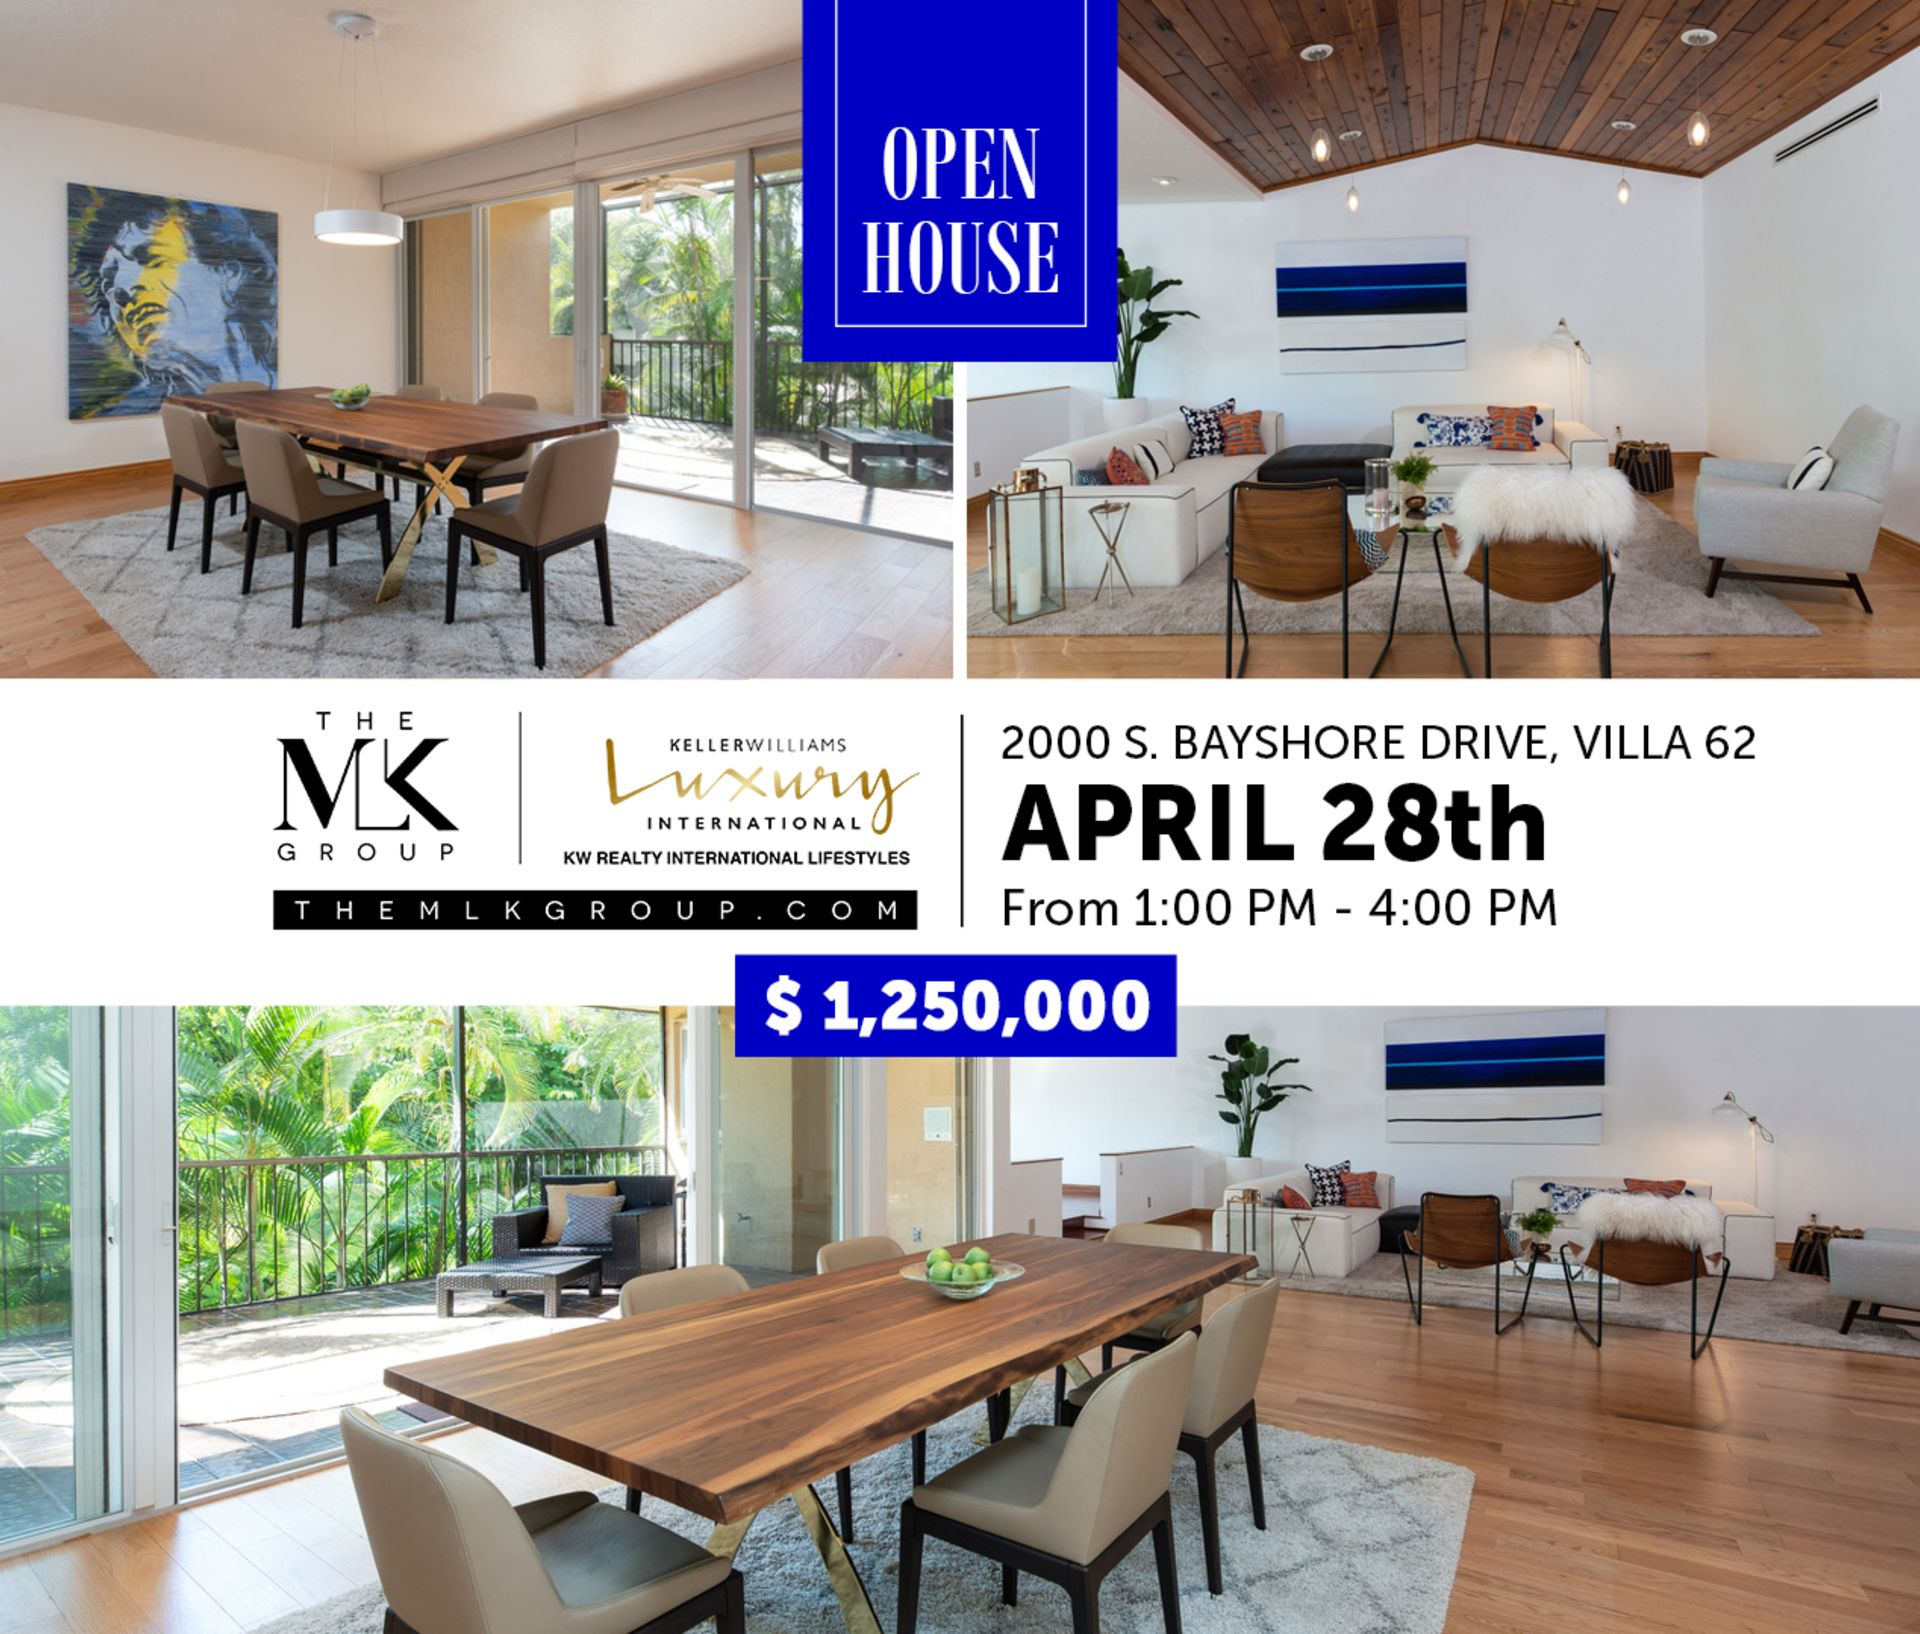 Townhouse for sale open in coconut grove Sunday April 28th, 2-4pm